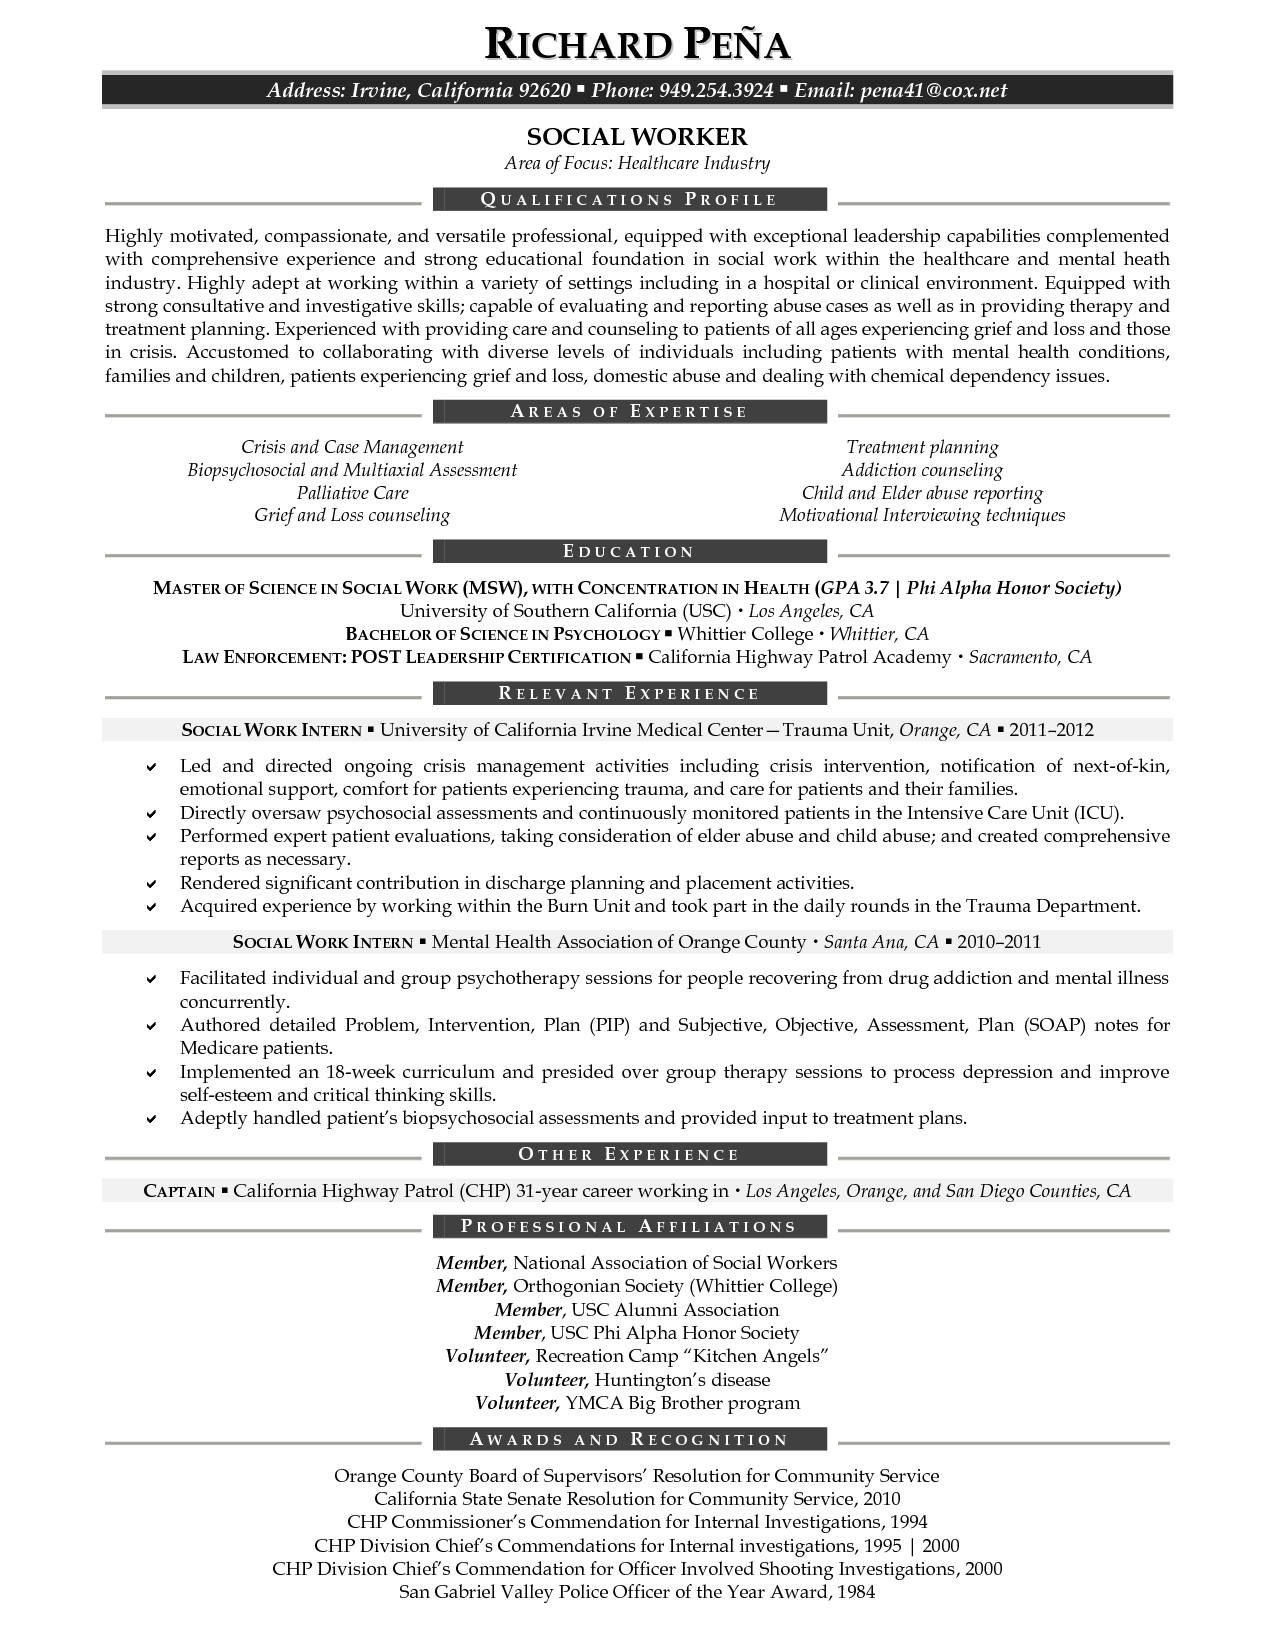 social work resume template  google search  resume tips